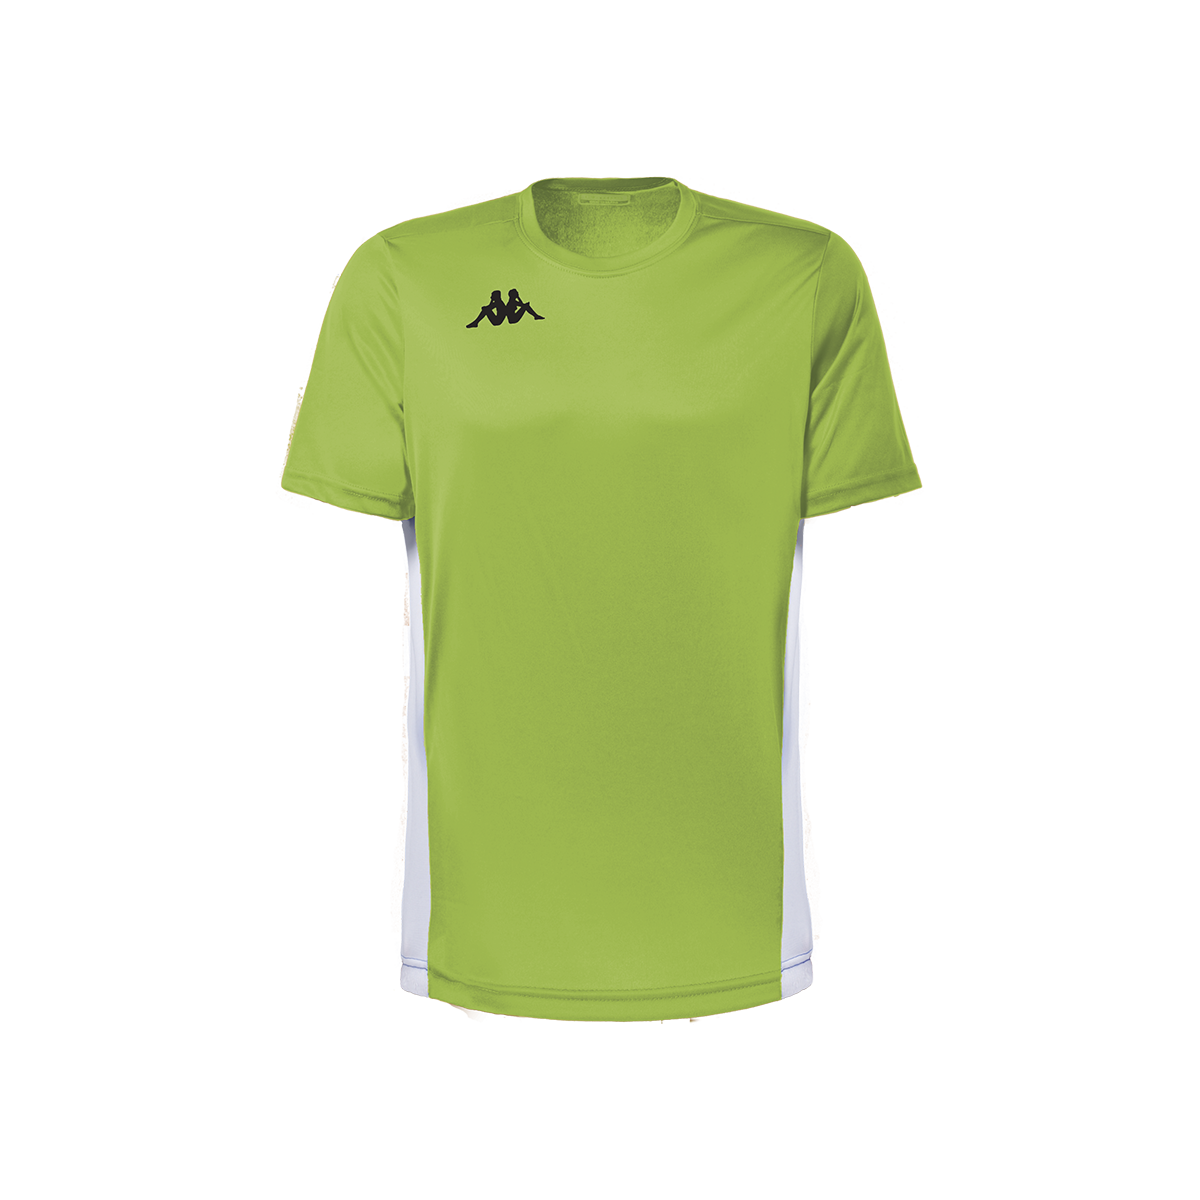 Kappa Wenet Match Shirt SS - Green Fluo